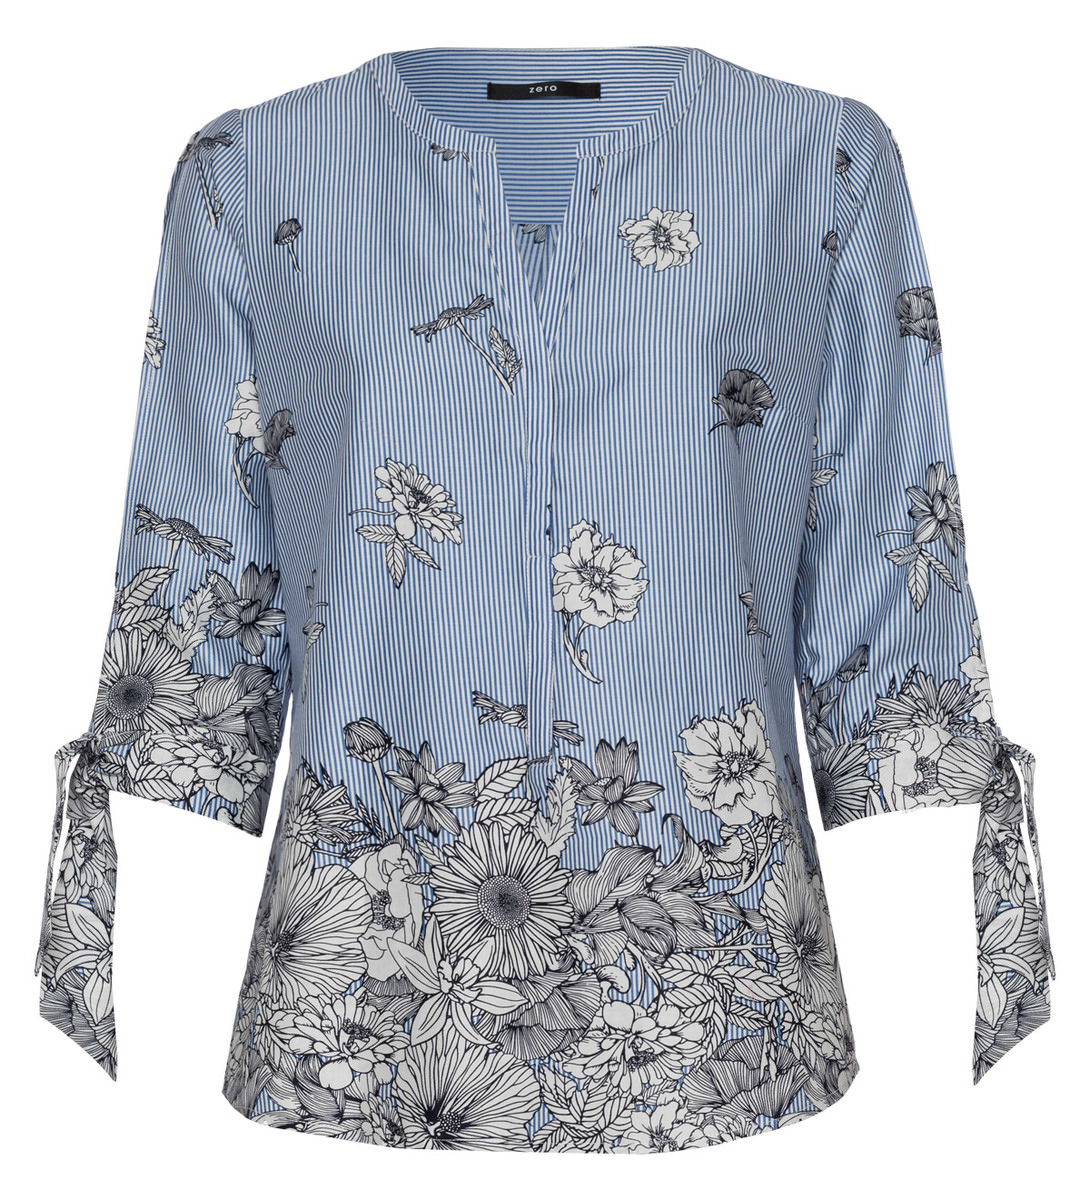 Bluse mit Details in water blue